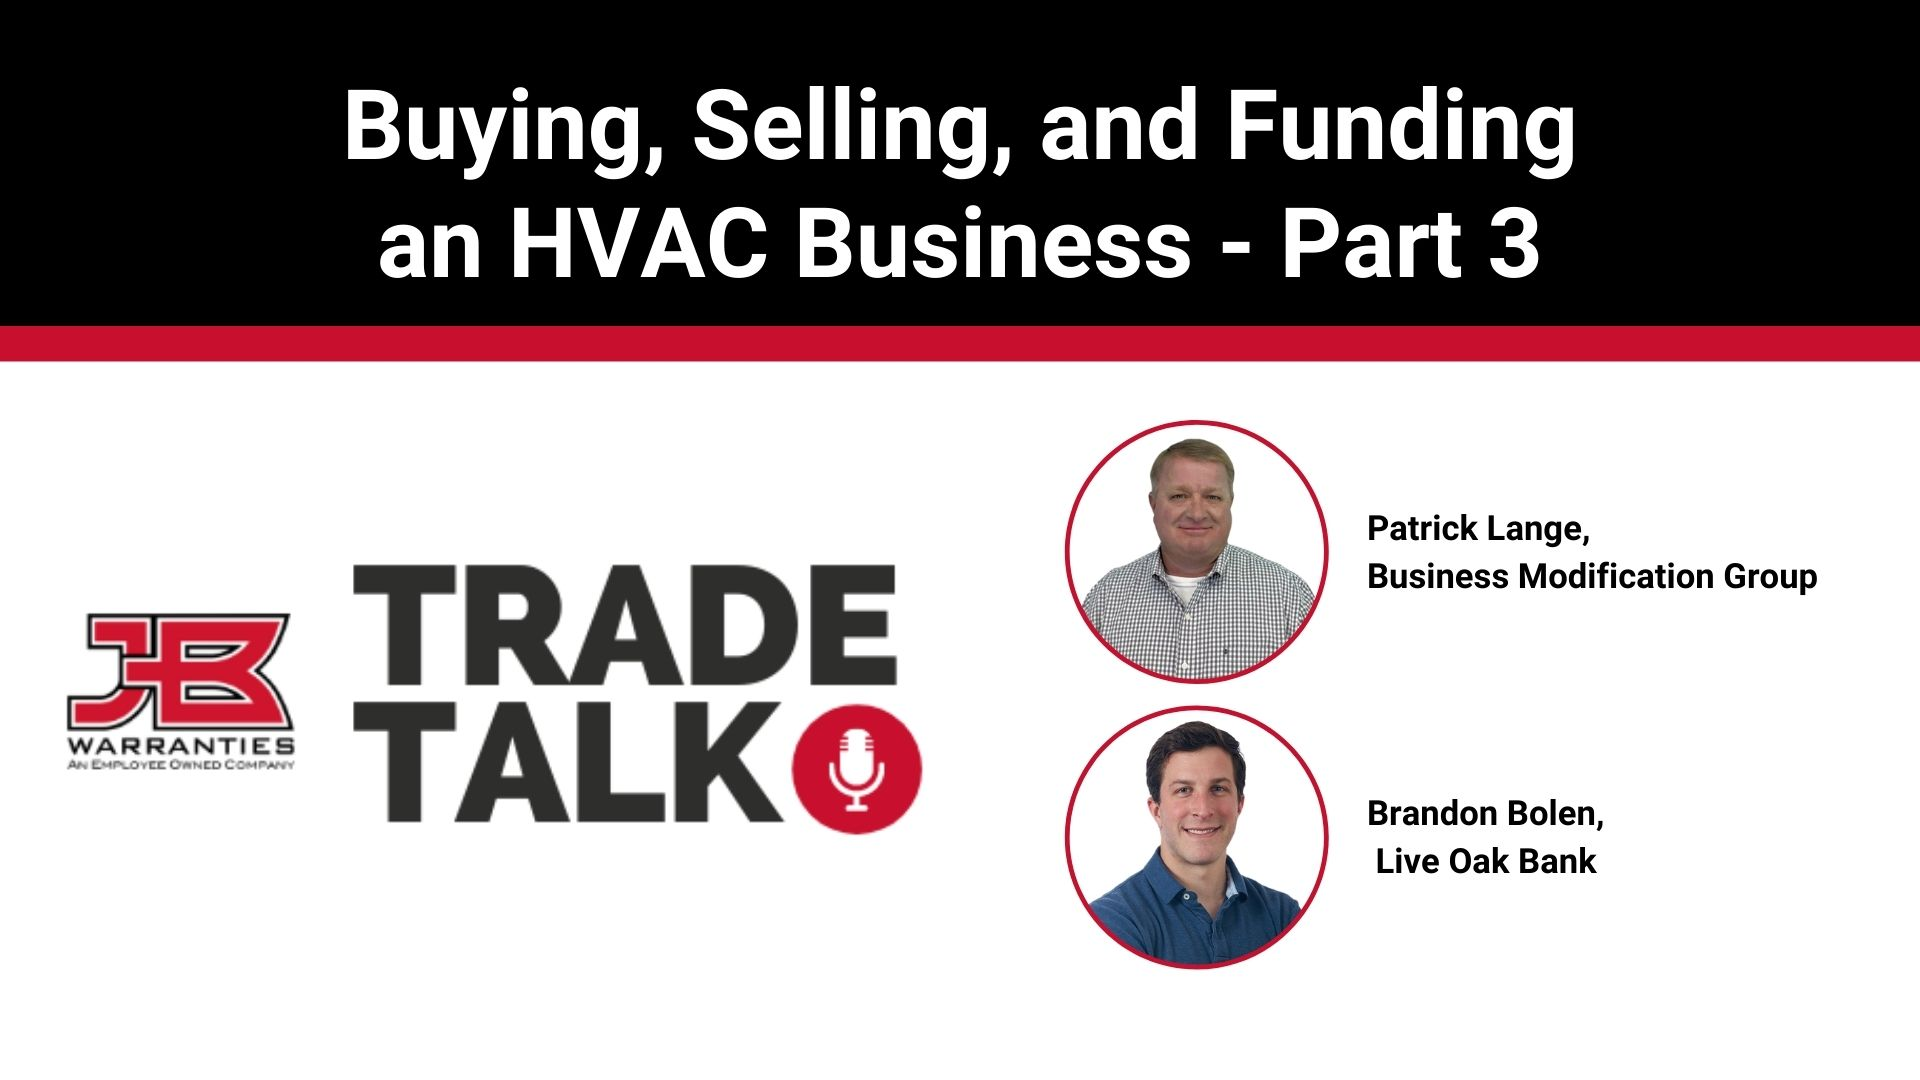 Buying, Selling, and Funding an HVAC Business - Part 3